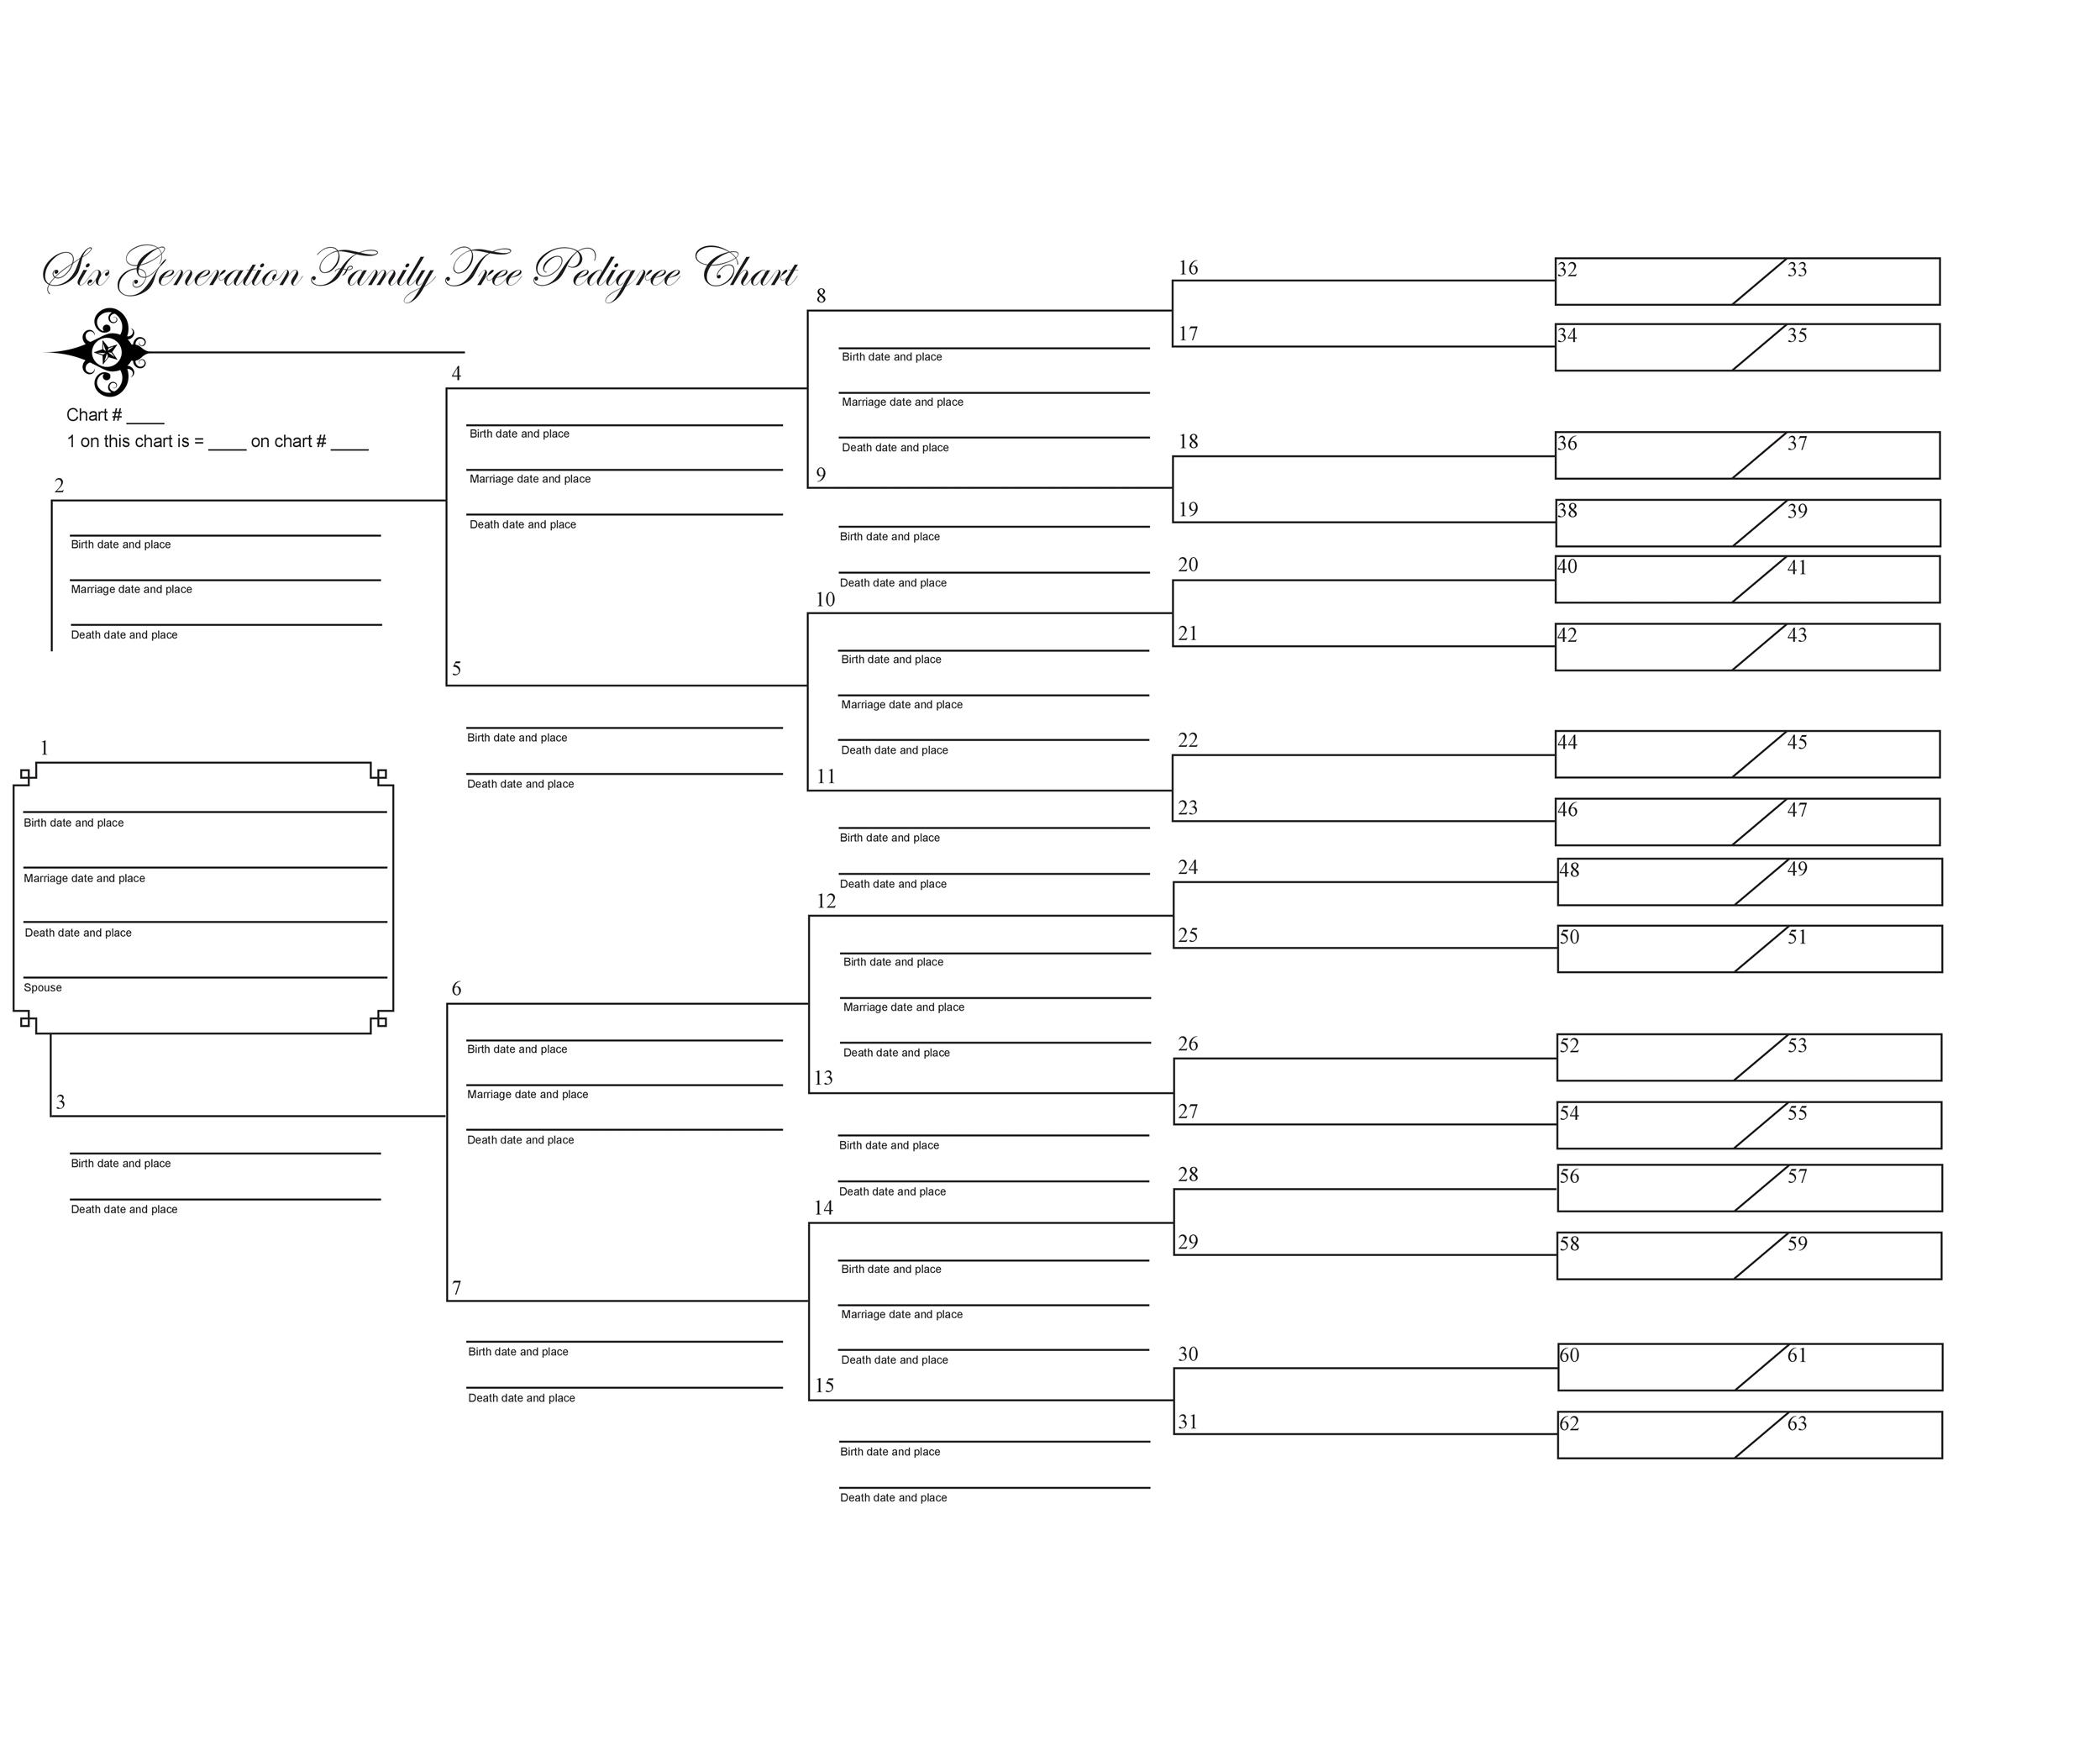 templates for family tree charts - 40 free family tree templates word excel pdf